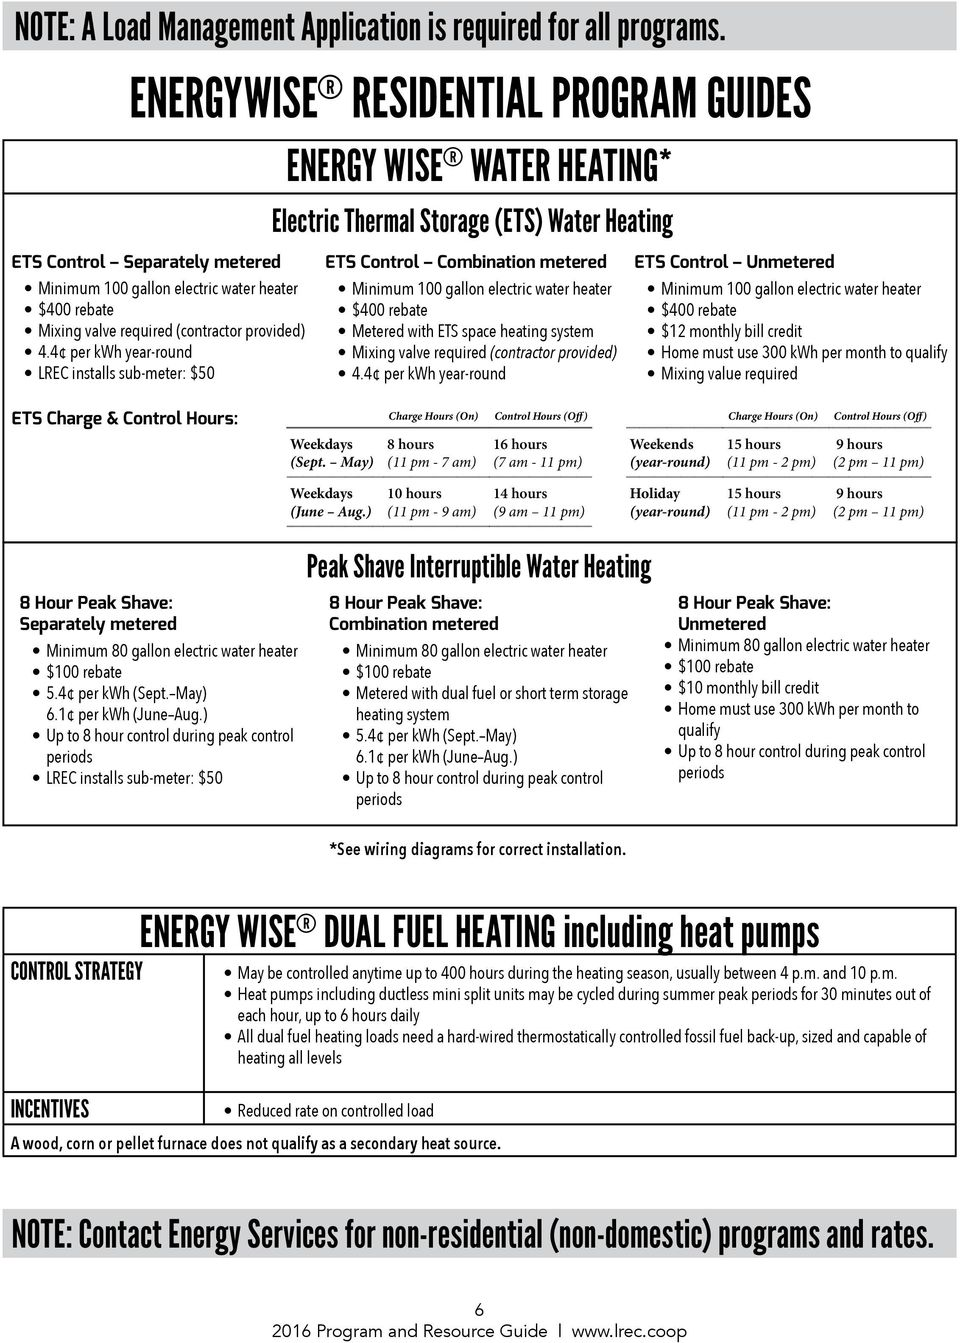 Lake Region Electric Cooperative 2016 Energy Wise Program Resource Wiring Diagram For Management 4 Per Kwh Year Round Lrec Installs Sub Meter 50 Water